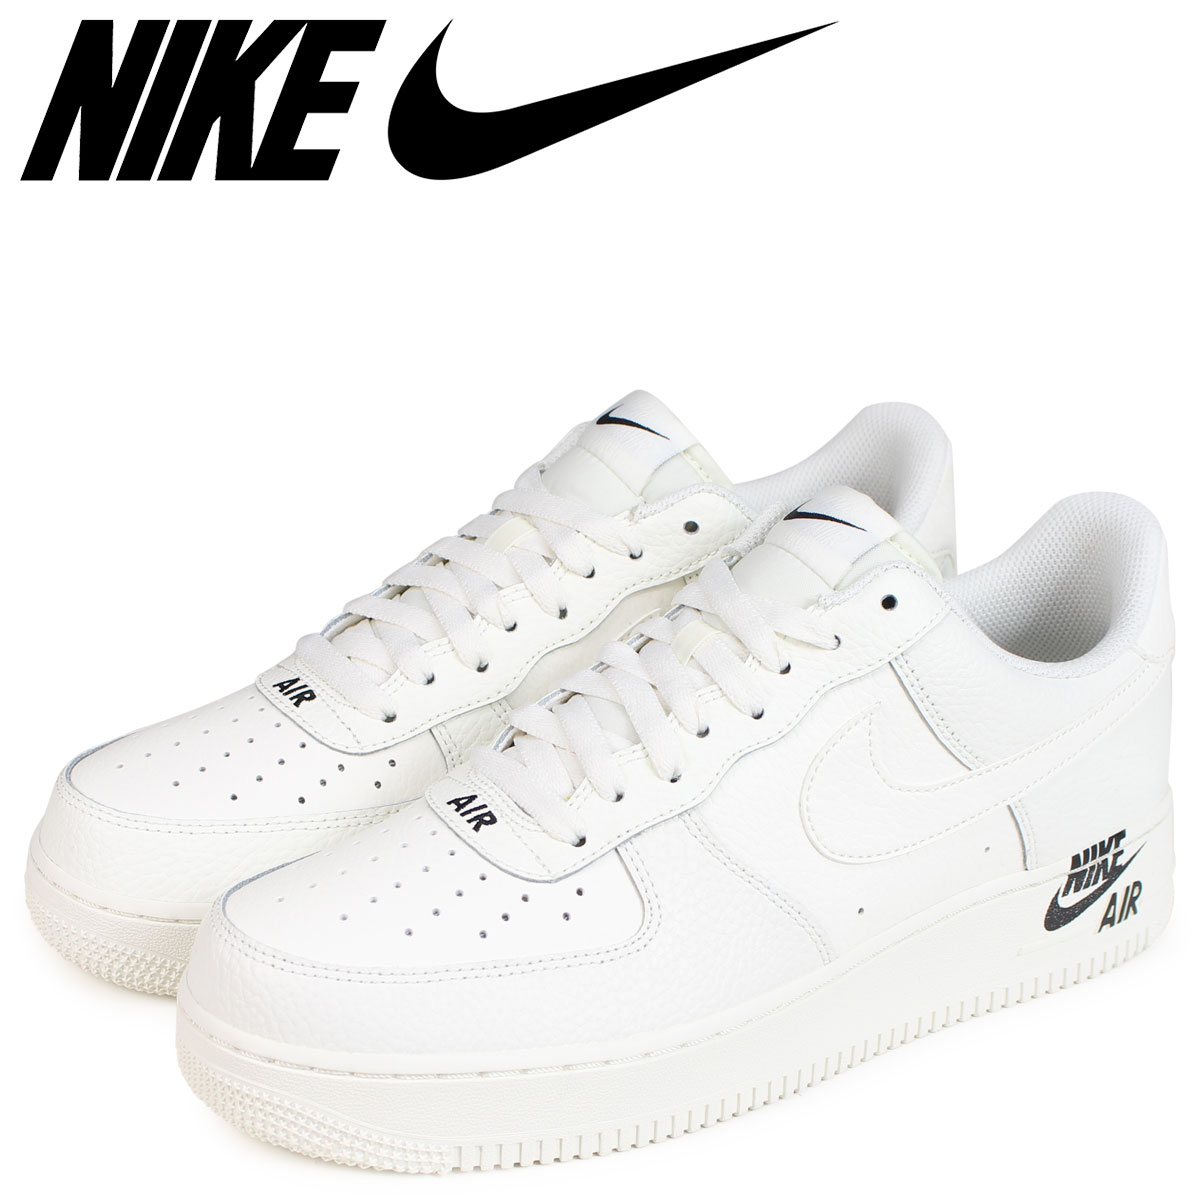 NIKE Nike air force 1 sneakers men AIR FORCE 1 07 LEATHER AJ7280 102 white white